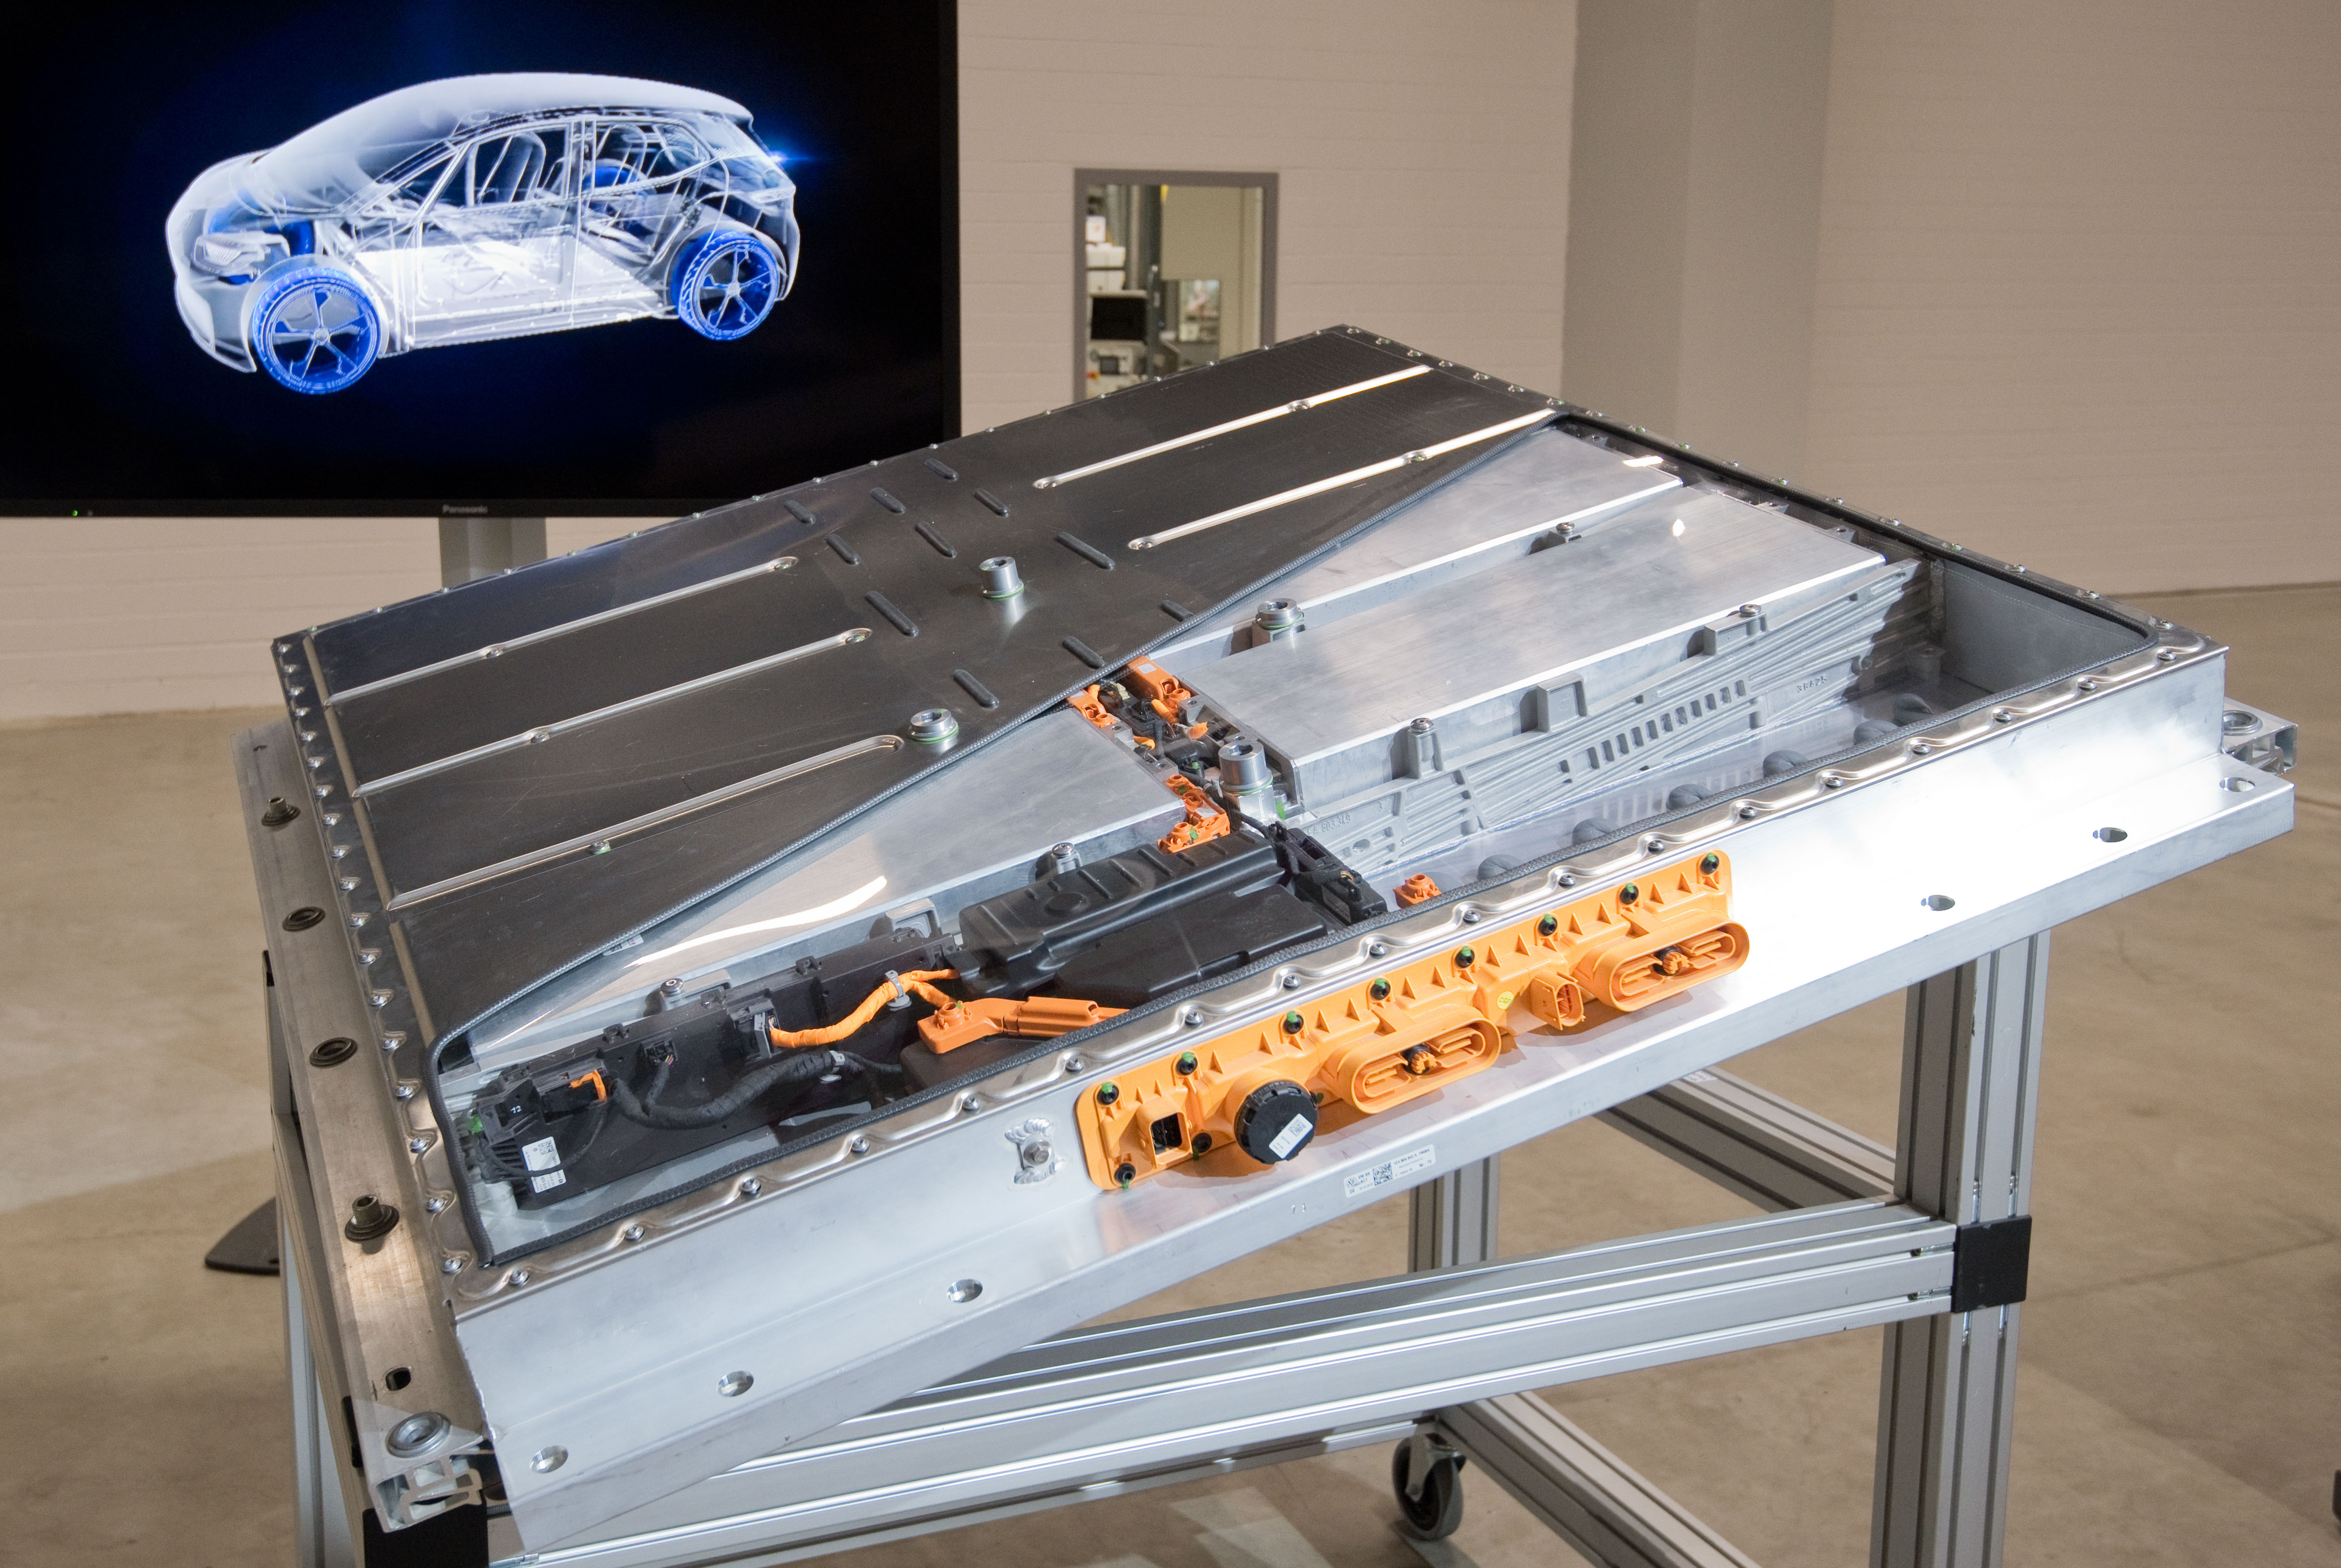 Volkswagen - Production of battery cells for electric cars